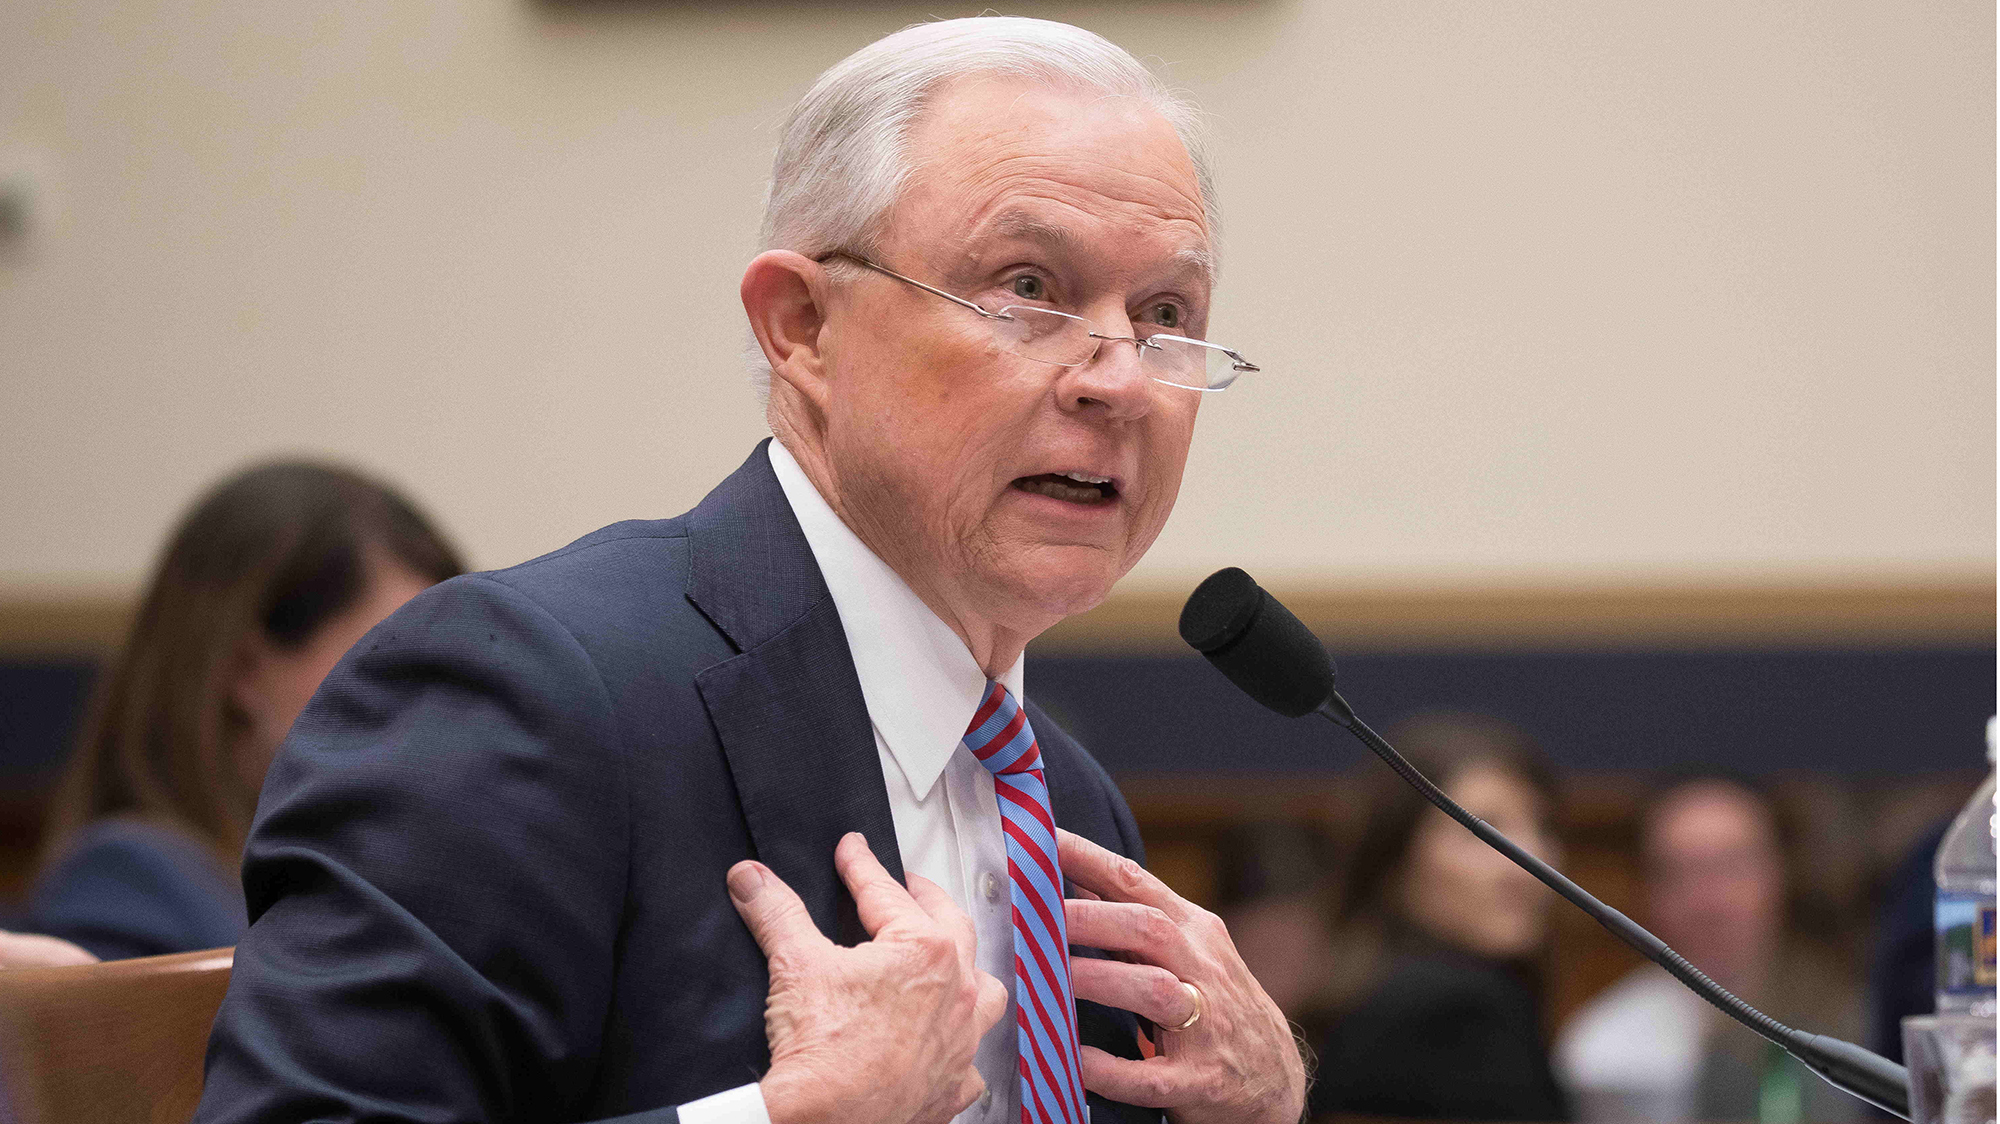 Attorney General Jeff Sessions testifies before the House Judiciary